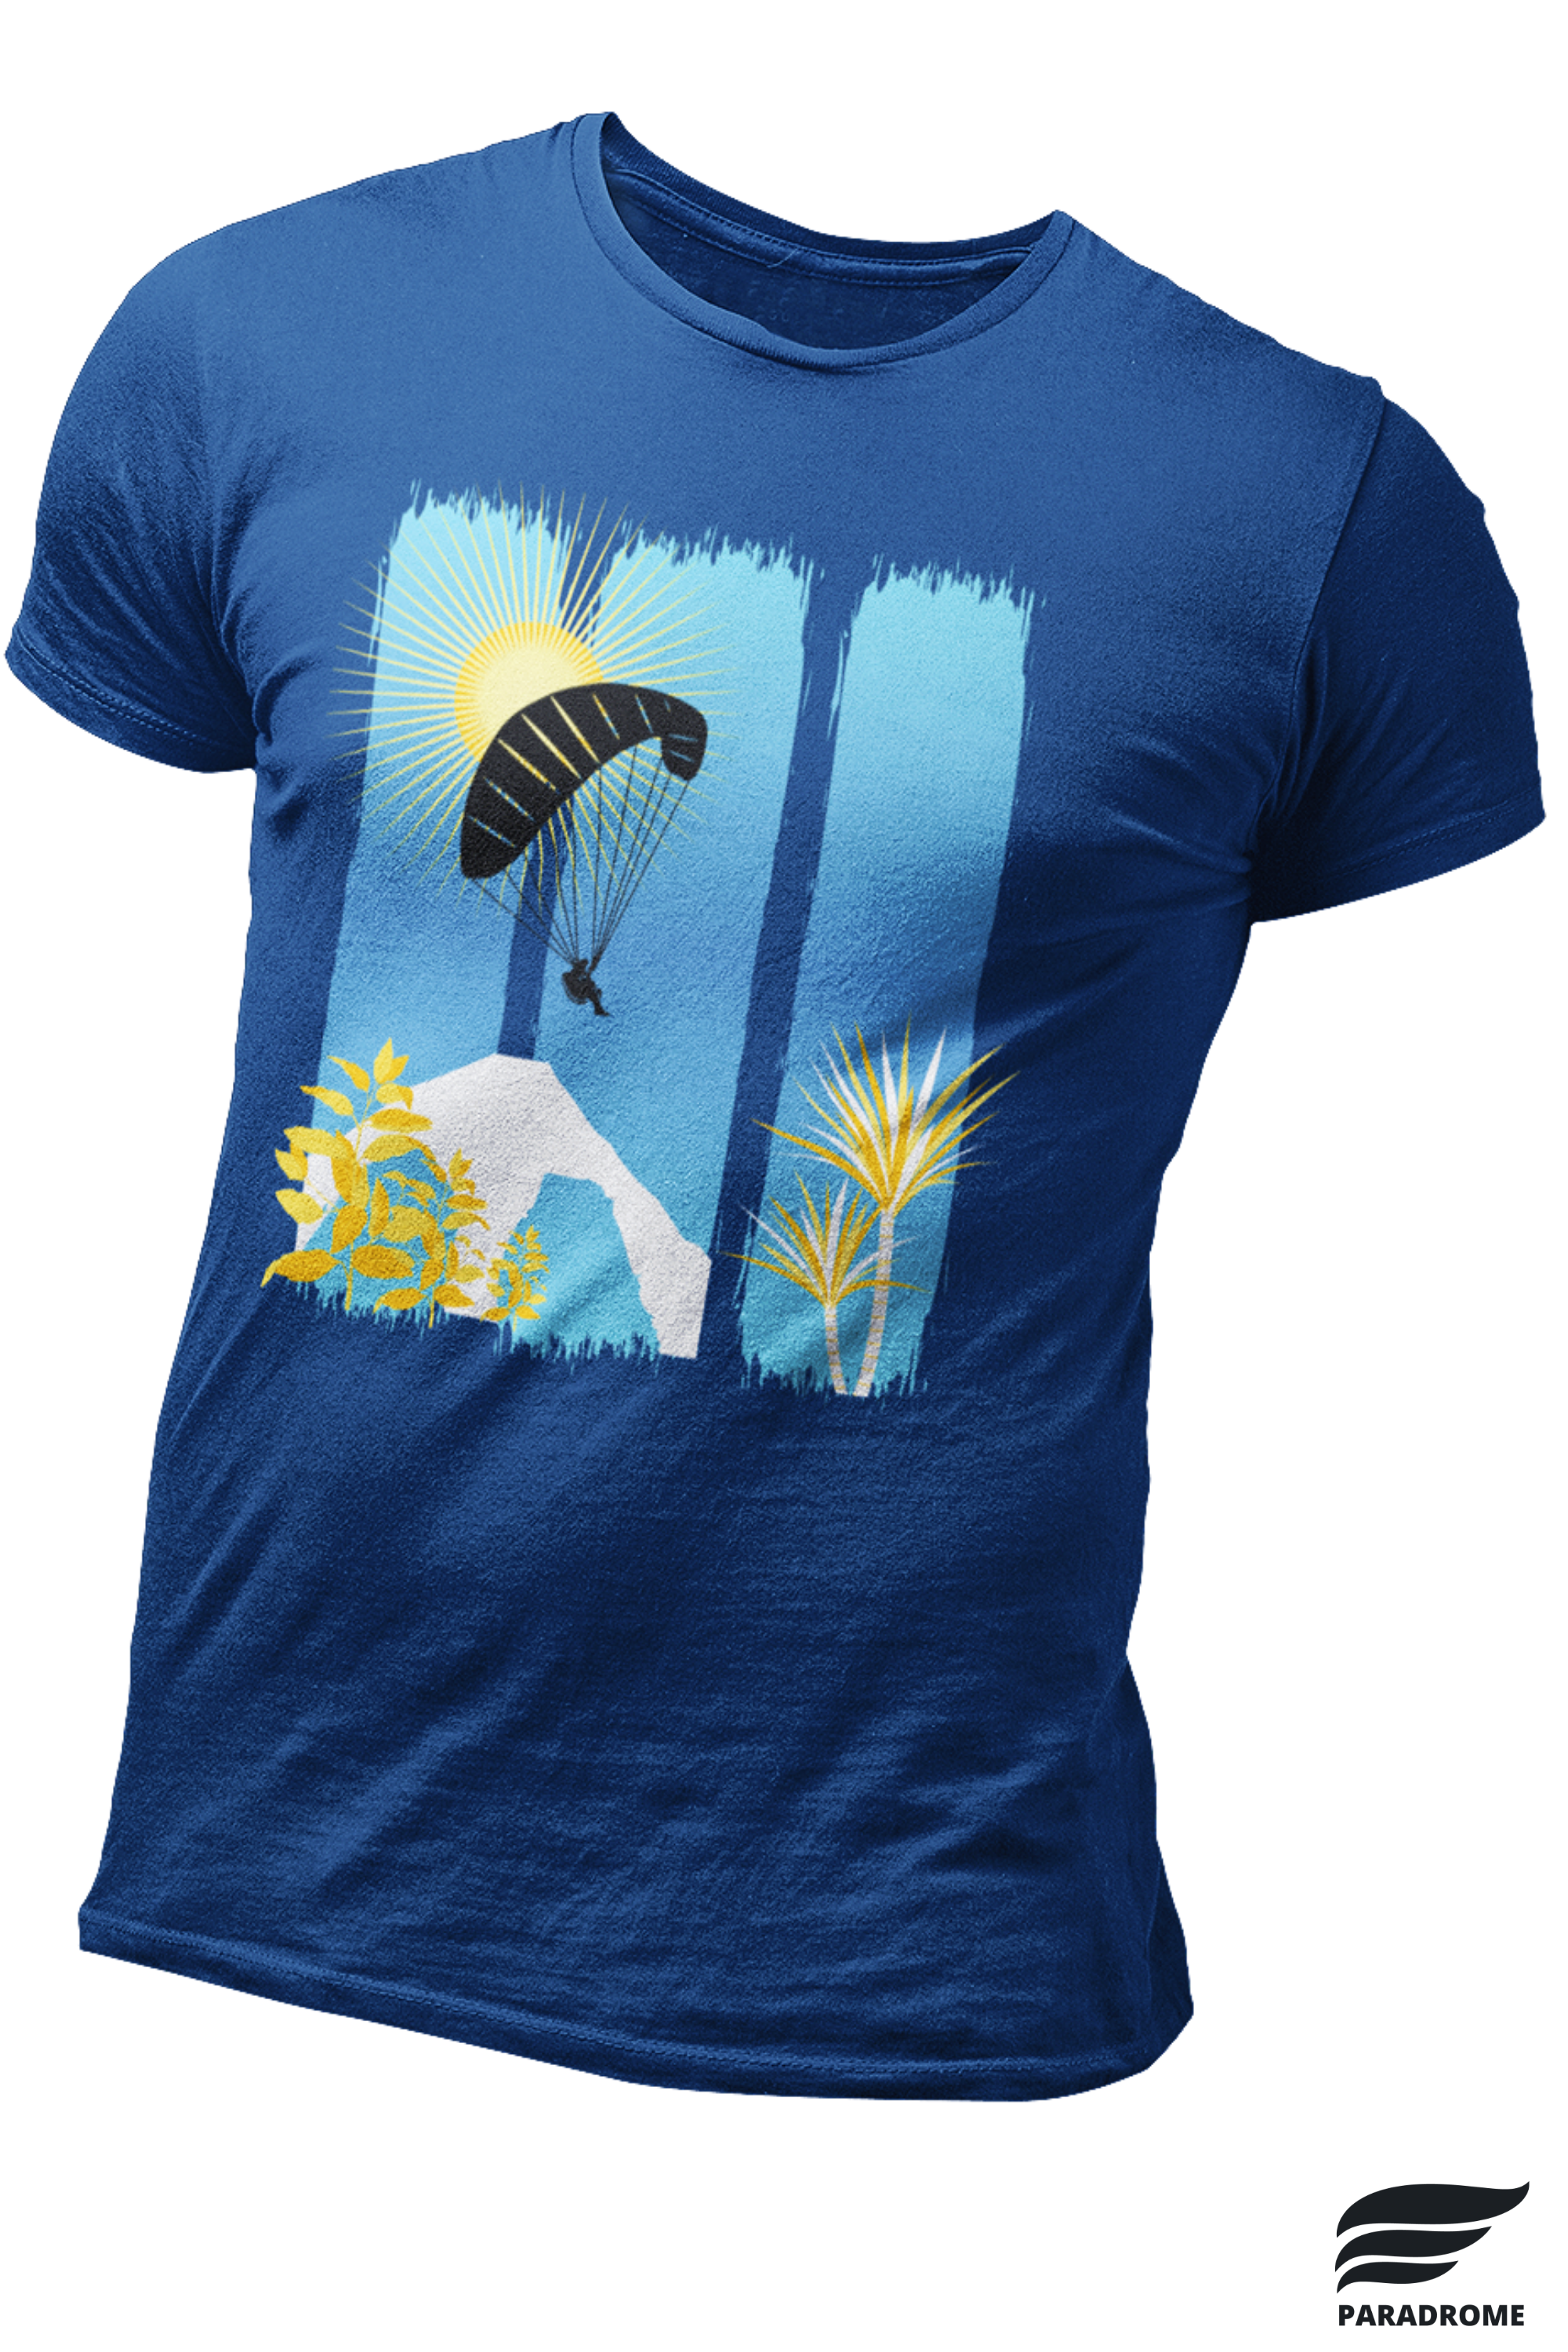 PREMIUM APPAREL for Powered Paragliding Fans in 2020